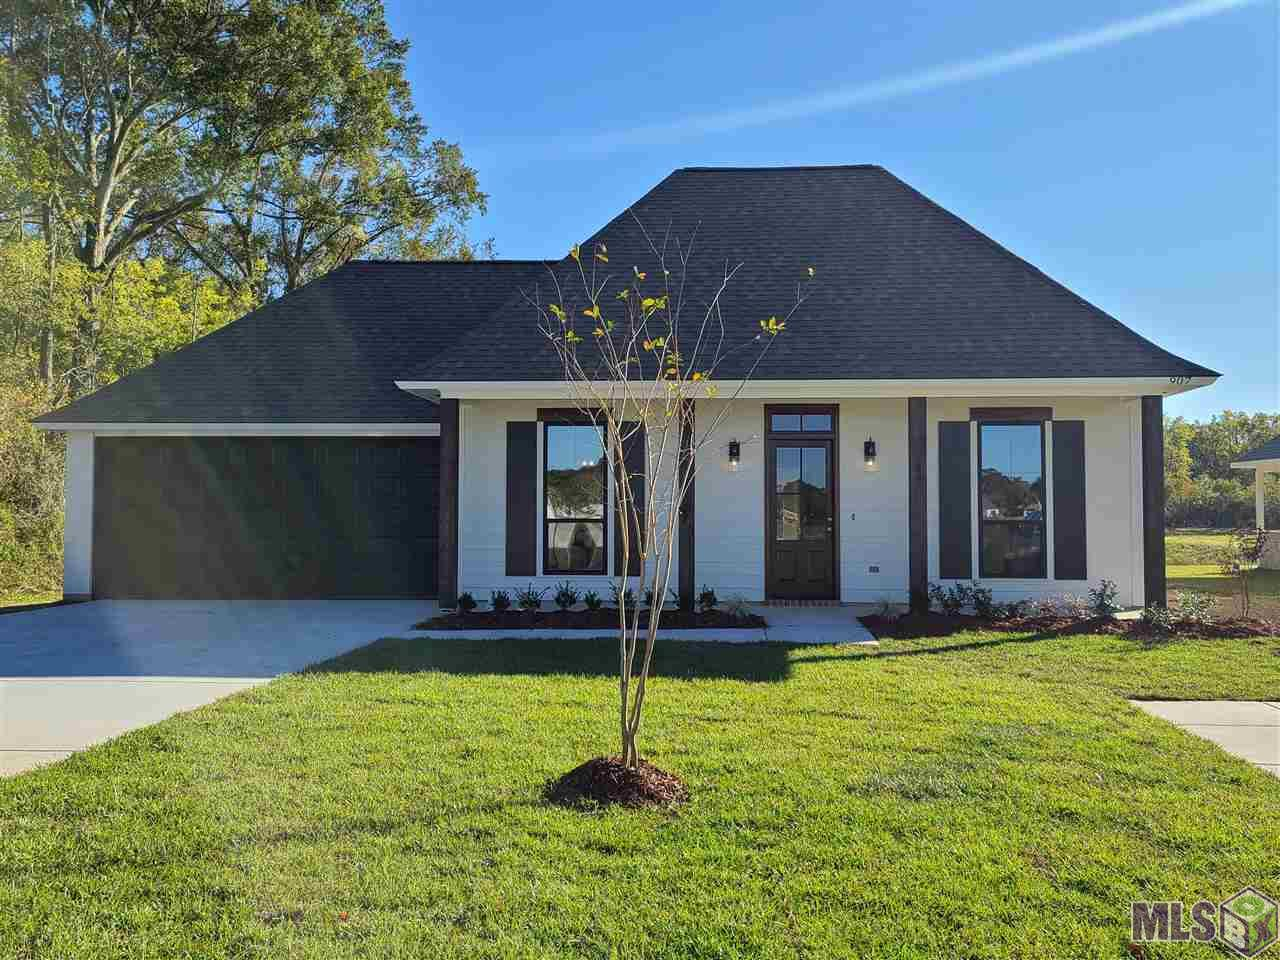 "Pre-Sold Home sold before listing in **Arbor Crossing by Trinity Construction**  Pick your lot and plan and sign contract to build your new custom home by Jun 31st to receive free Frigidaire SS Side x Side Refrigerator & 2"" Blinds Throughout**  3 BR 2 Bath by Trinity include features such as - Stainless Steel Appliances, 3 cm Slab Quartz or Granite Countertops, Custom Tile Backsplash, Deep Single Bowl or Dual Undermount Kitchen Sink, Custom Wood Cabinets, Pull-out Drawer for Trash Can. Bathrooms - Your choice of Oil Rubbed Bronze or Brushed Nickel Fixtures, 5' Soaking Tub in Master and Separate Custom Tile Shower. Flooring - Rigid Core Vinyl Wood Plank Flooring, No Carpet. Outdoor Features - Brick, Stucco and Hardi-Plank Siding per plan, Cypress Posts and Window Lintels per plan, Professionally landscaped & sodded front yards, Custom Wood Front Entry Doors, 30 Year Architectural Shingles. Efficiency Features - 50 Gal Energy Efficient Water Heater, Radient Barrier Roof Decking, 14 seer energy efficient forced-air cooling w/gas furnace, R-13 Insulation Walls & R-38 in Attic, Water Management Faucets - Dishwashers - Toilets, LED Disk Lights thru-out (per plan). Beautiful Lighting Packages in Oil Rubbed Bronze or Brushed Nickel finishes, Ceiling Fans w/light kit in Living Room & all Bedrooms, Patio Pre-wired for Ceiling Fan, Decorative Chandelier in Dining.  Miscellaneous - Smoke & Carbon Monoxide Detectors, Cat5e & Cable Connections (per plan). Pre-wired for Security and each home comes with a Security System Package w/2 years of monitoring (Restrictions Apply).  9, 10, & 11 Ft Ceilings (per Plan),  5-1/4"" Crown Molding in Open Living area and all rooms,  5-1/4 Base Molding throughout, Decorative Wood Beams (per plan) & Ventless Gas Fireplace w/ Wood Logs & Mantle."